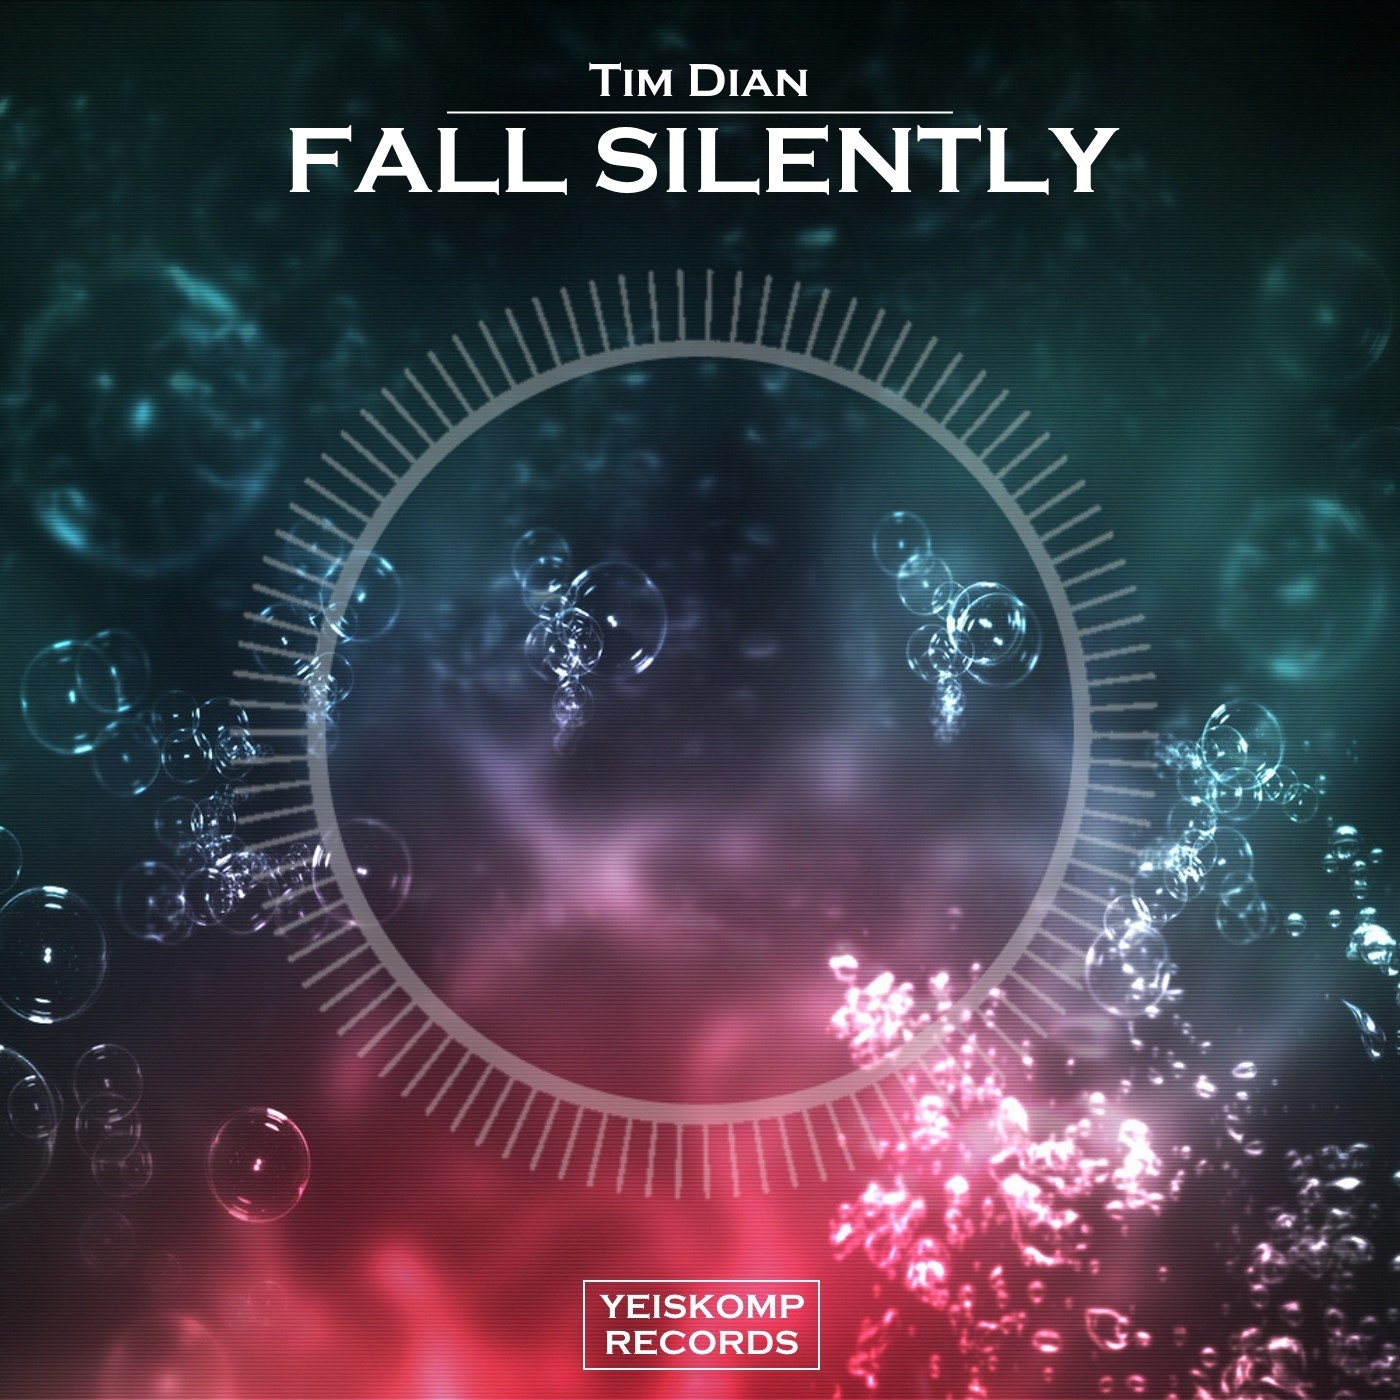 Tim Dian - Fall Silently (Original Mix)